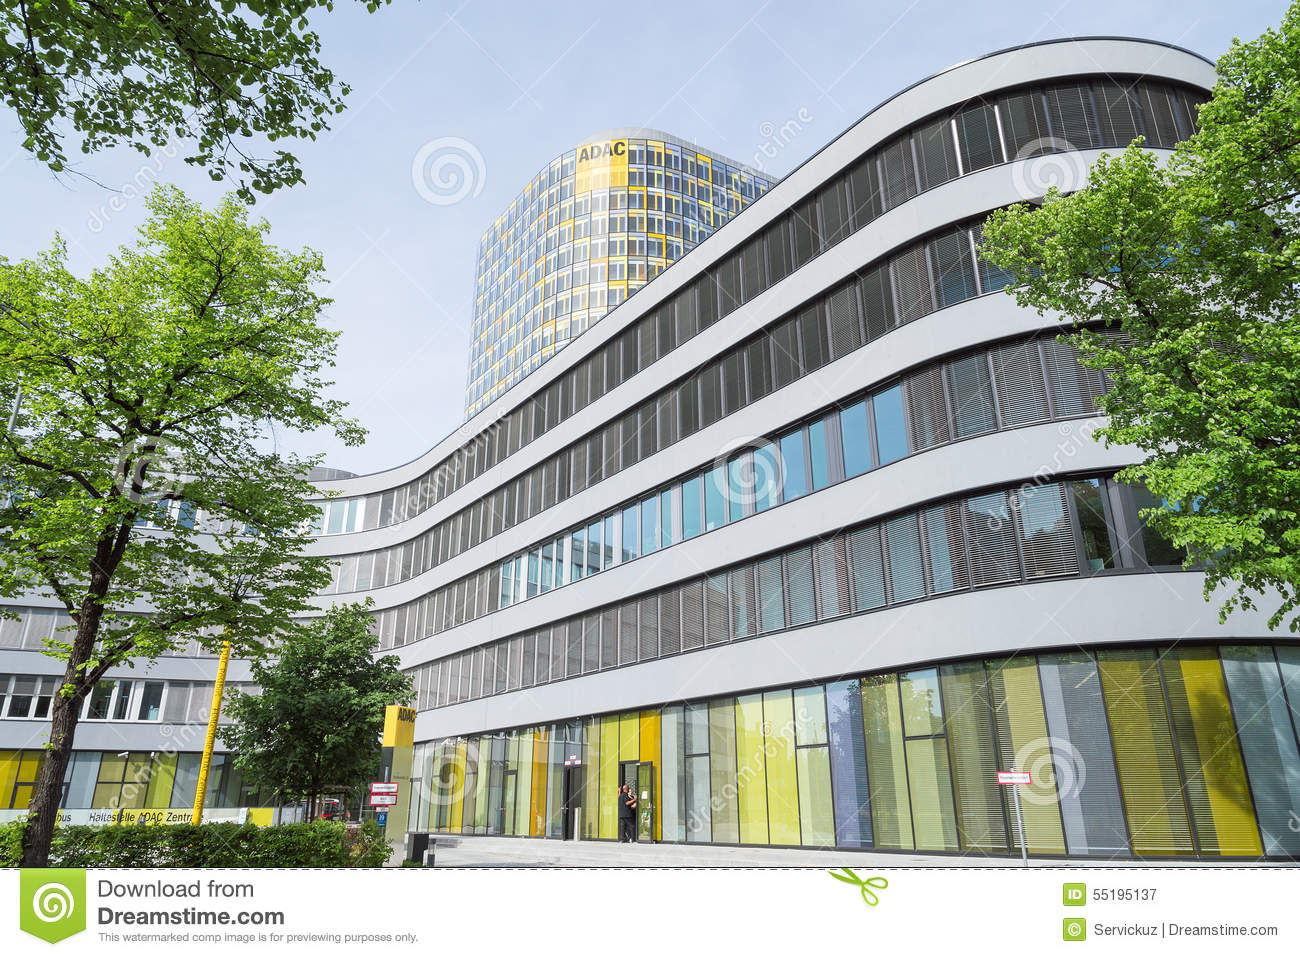 new adac headquarters 18 storey office tower rises above 5. Black Bedroom Furniture Sets. Home Design Ideas